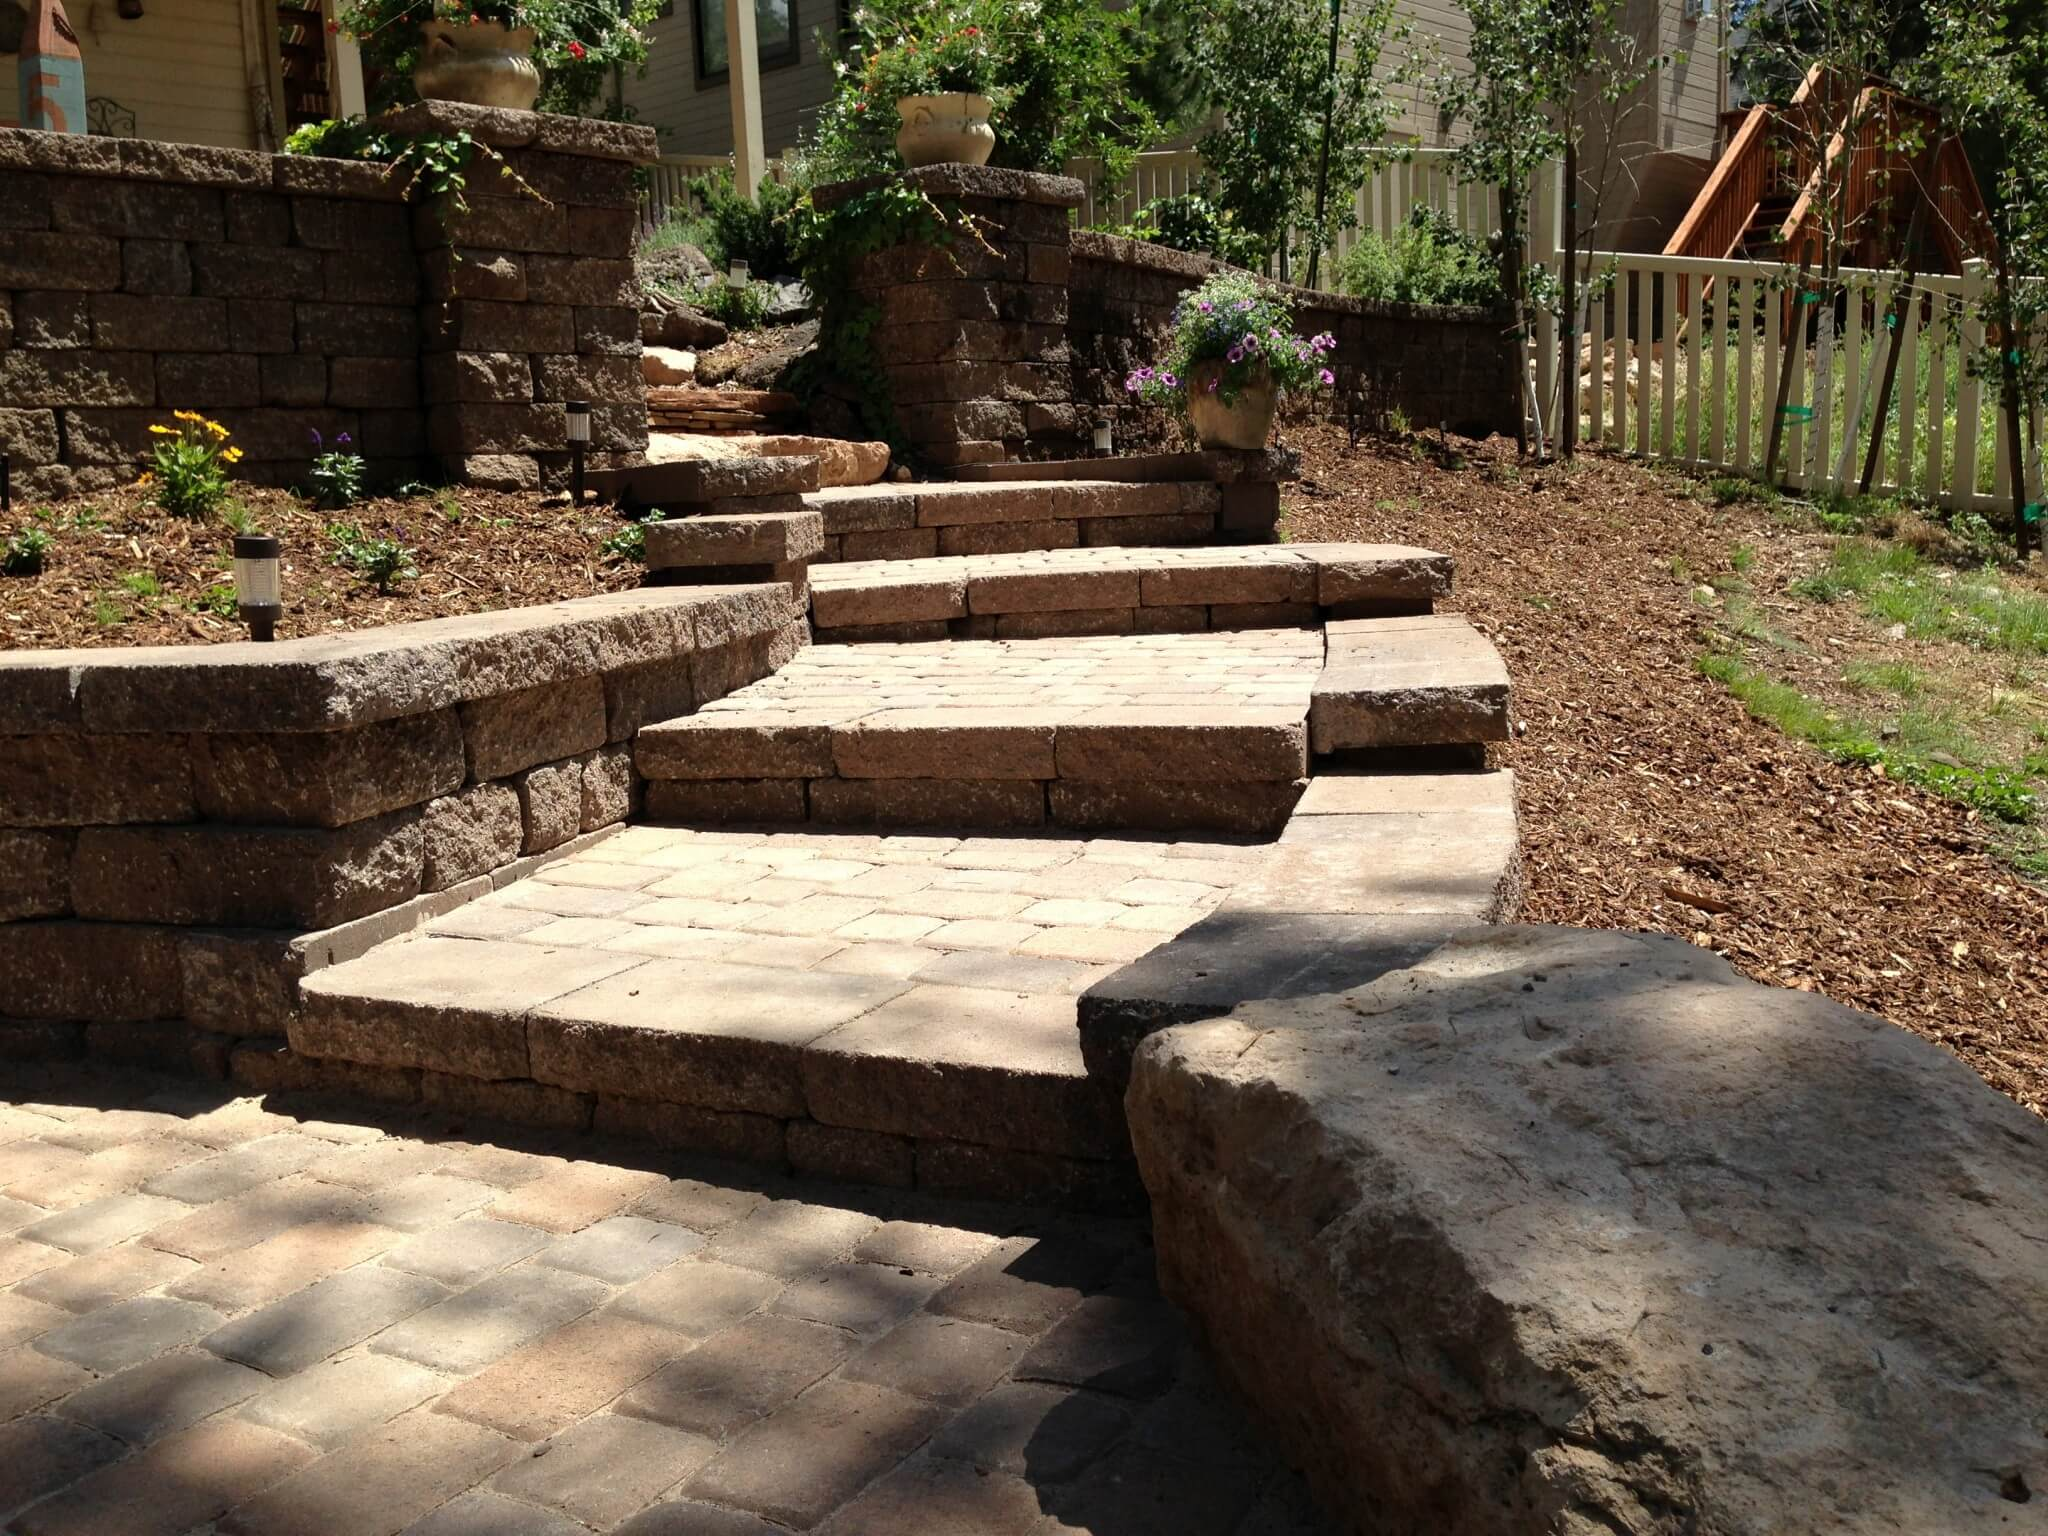 Landscaping Paver Block : Celtic block wall and paver patio flagstaff native plant